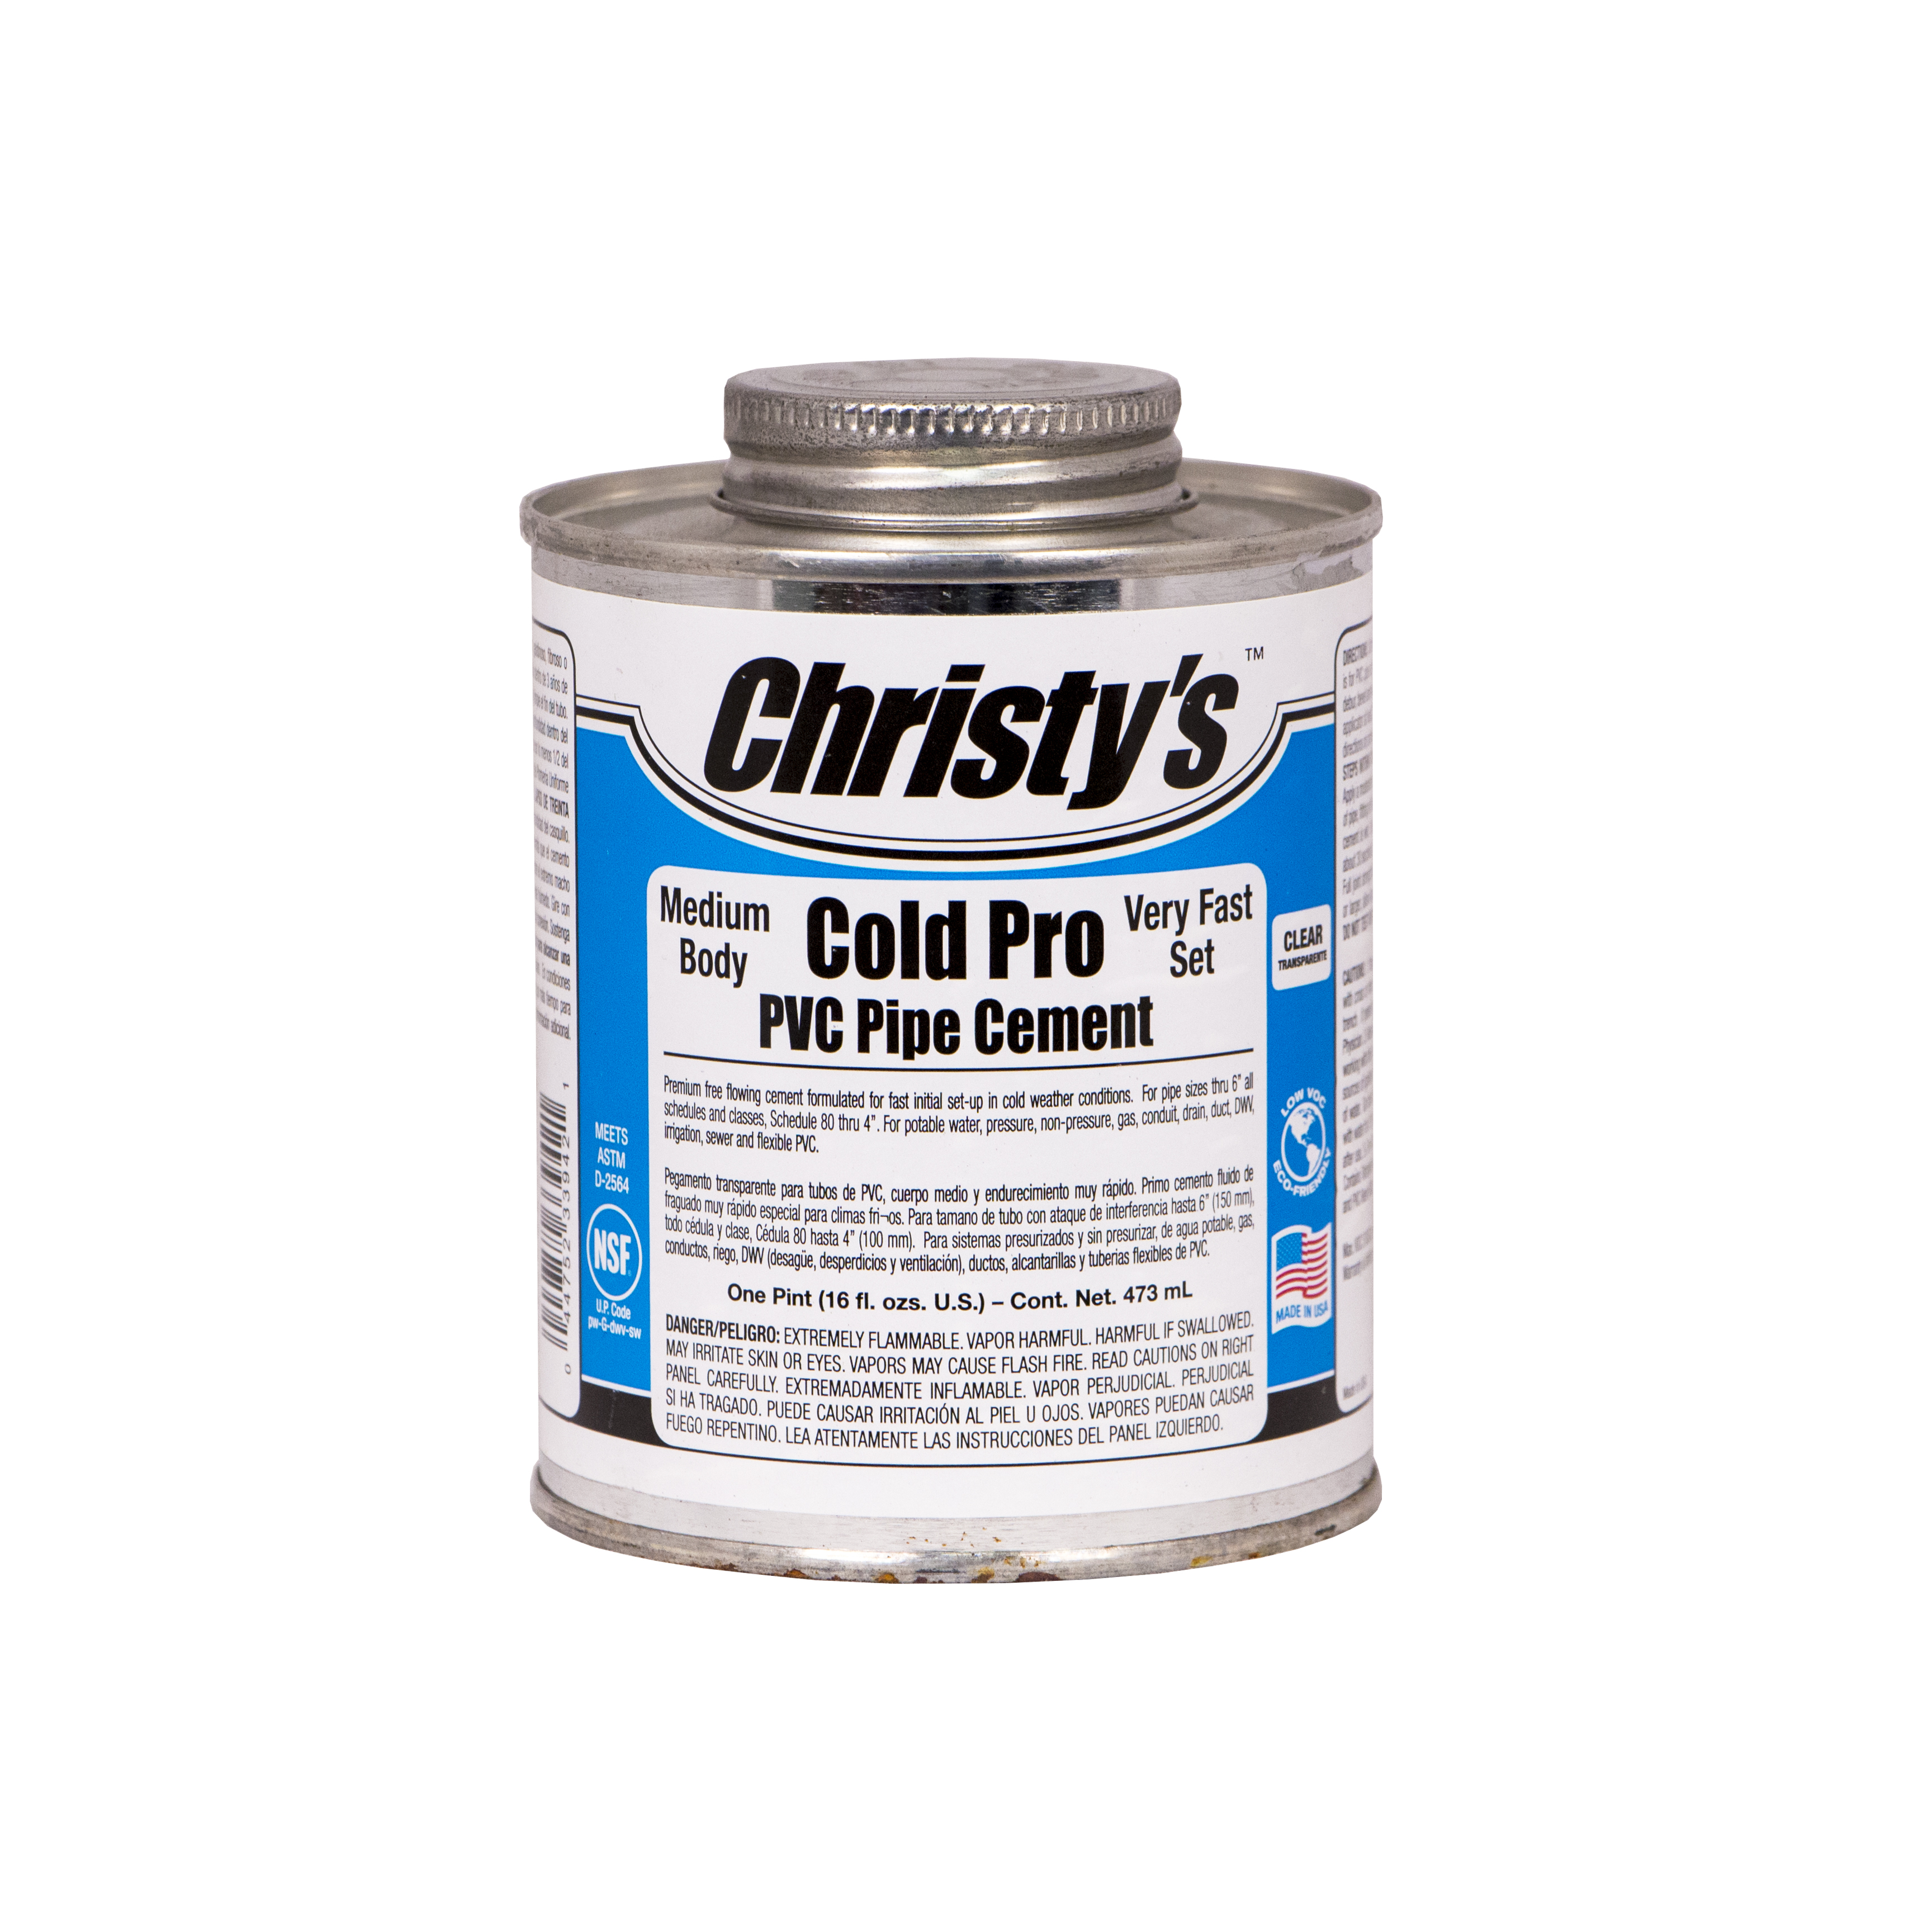 Solvent For Pvc Pipe And Cement : Cold pro pvc pipe cement christy s